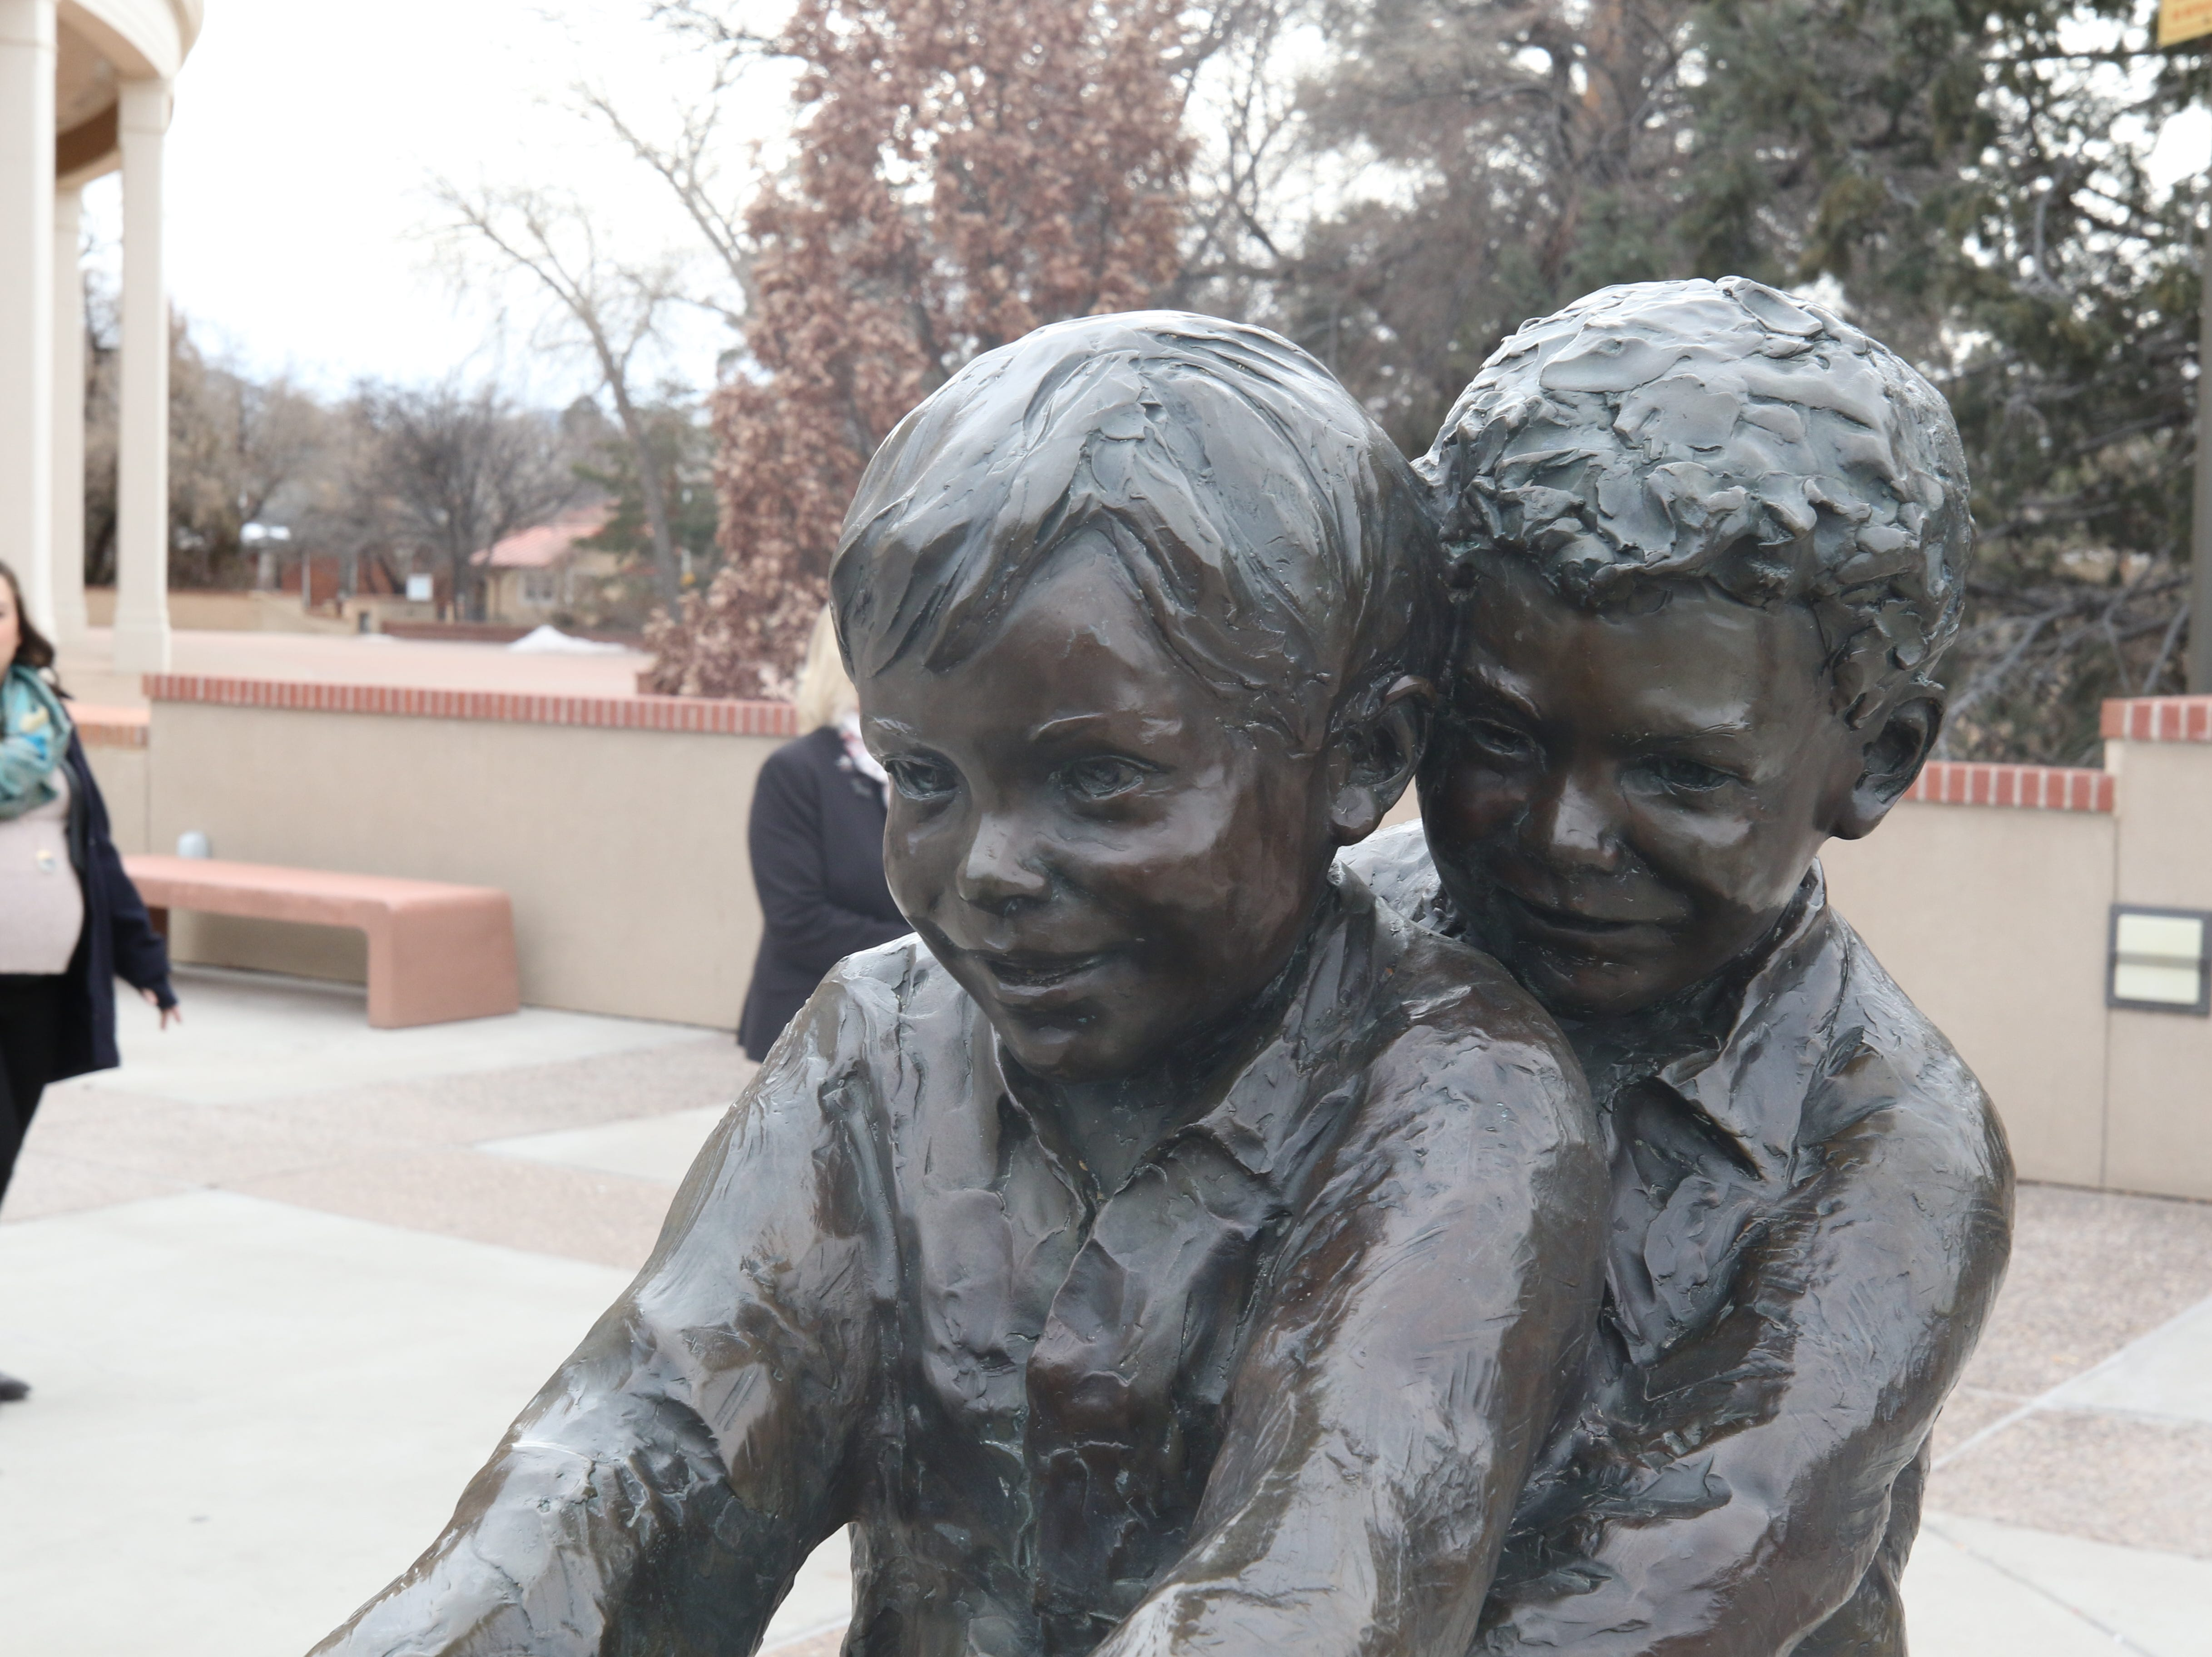 A statue of children playing outside the Roundhouse, Jan. 29, 2019 in Santa Fe.